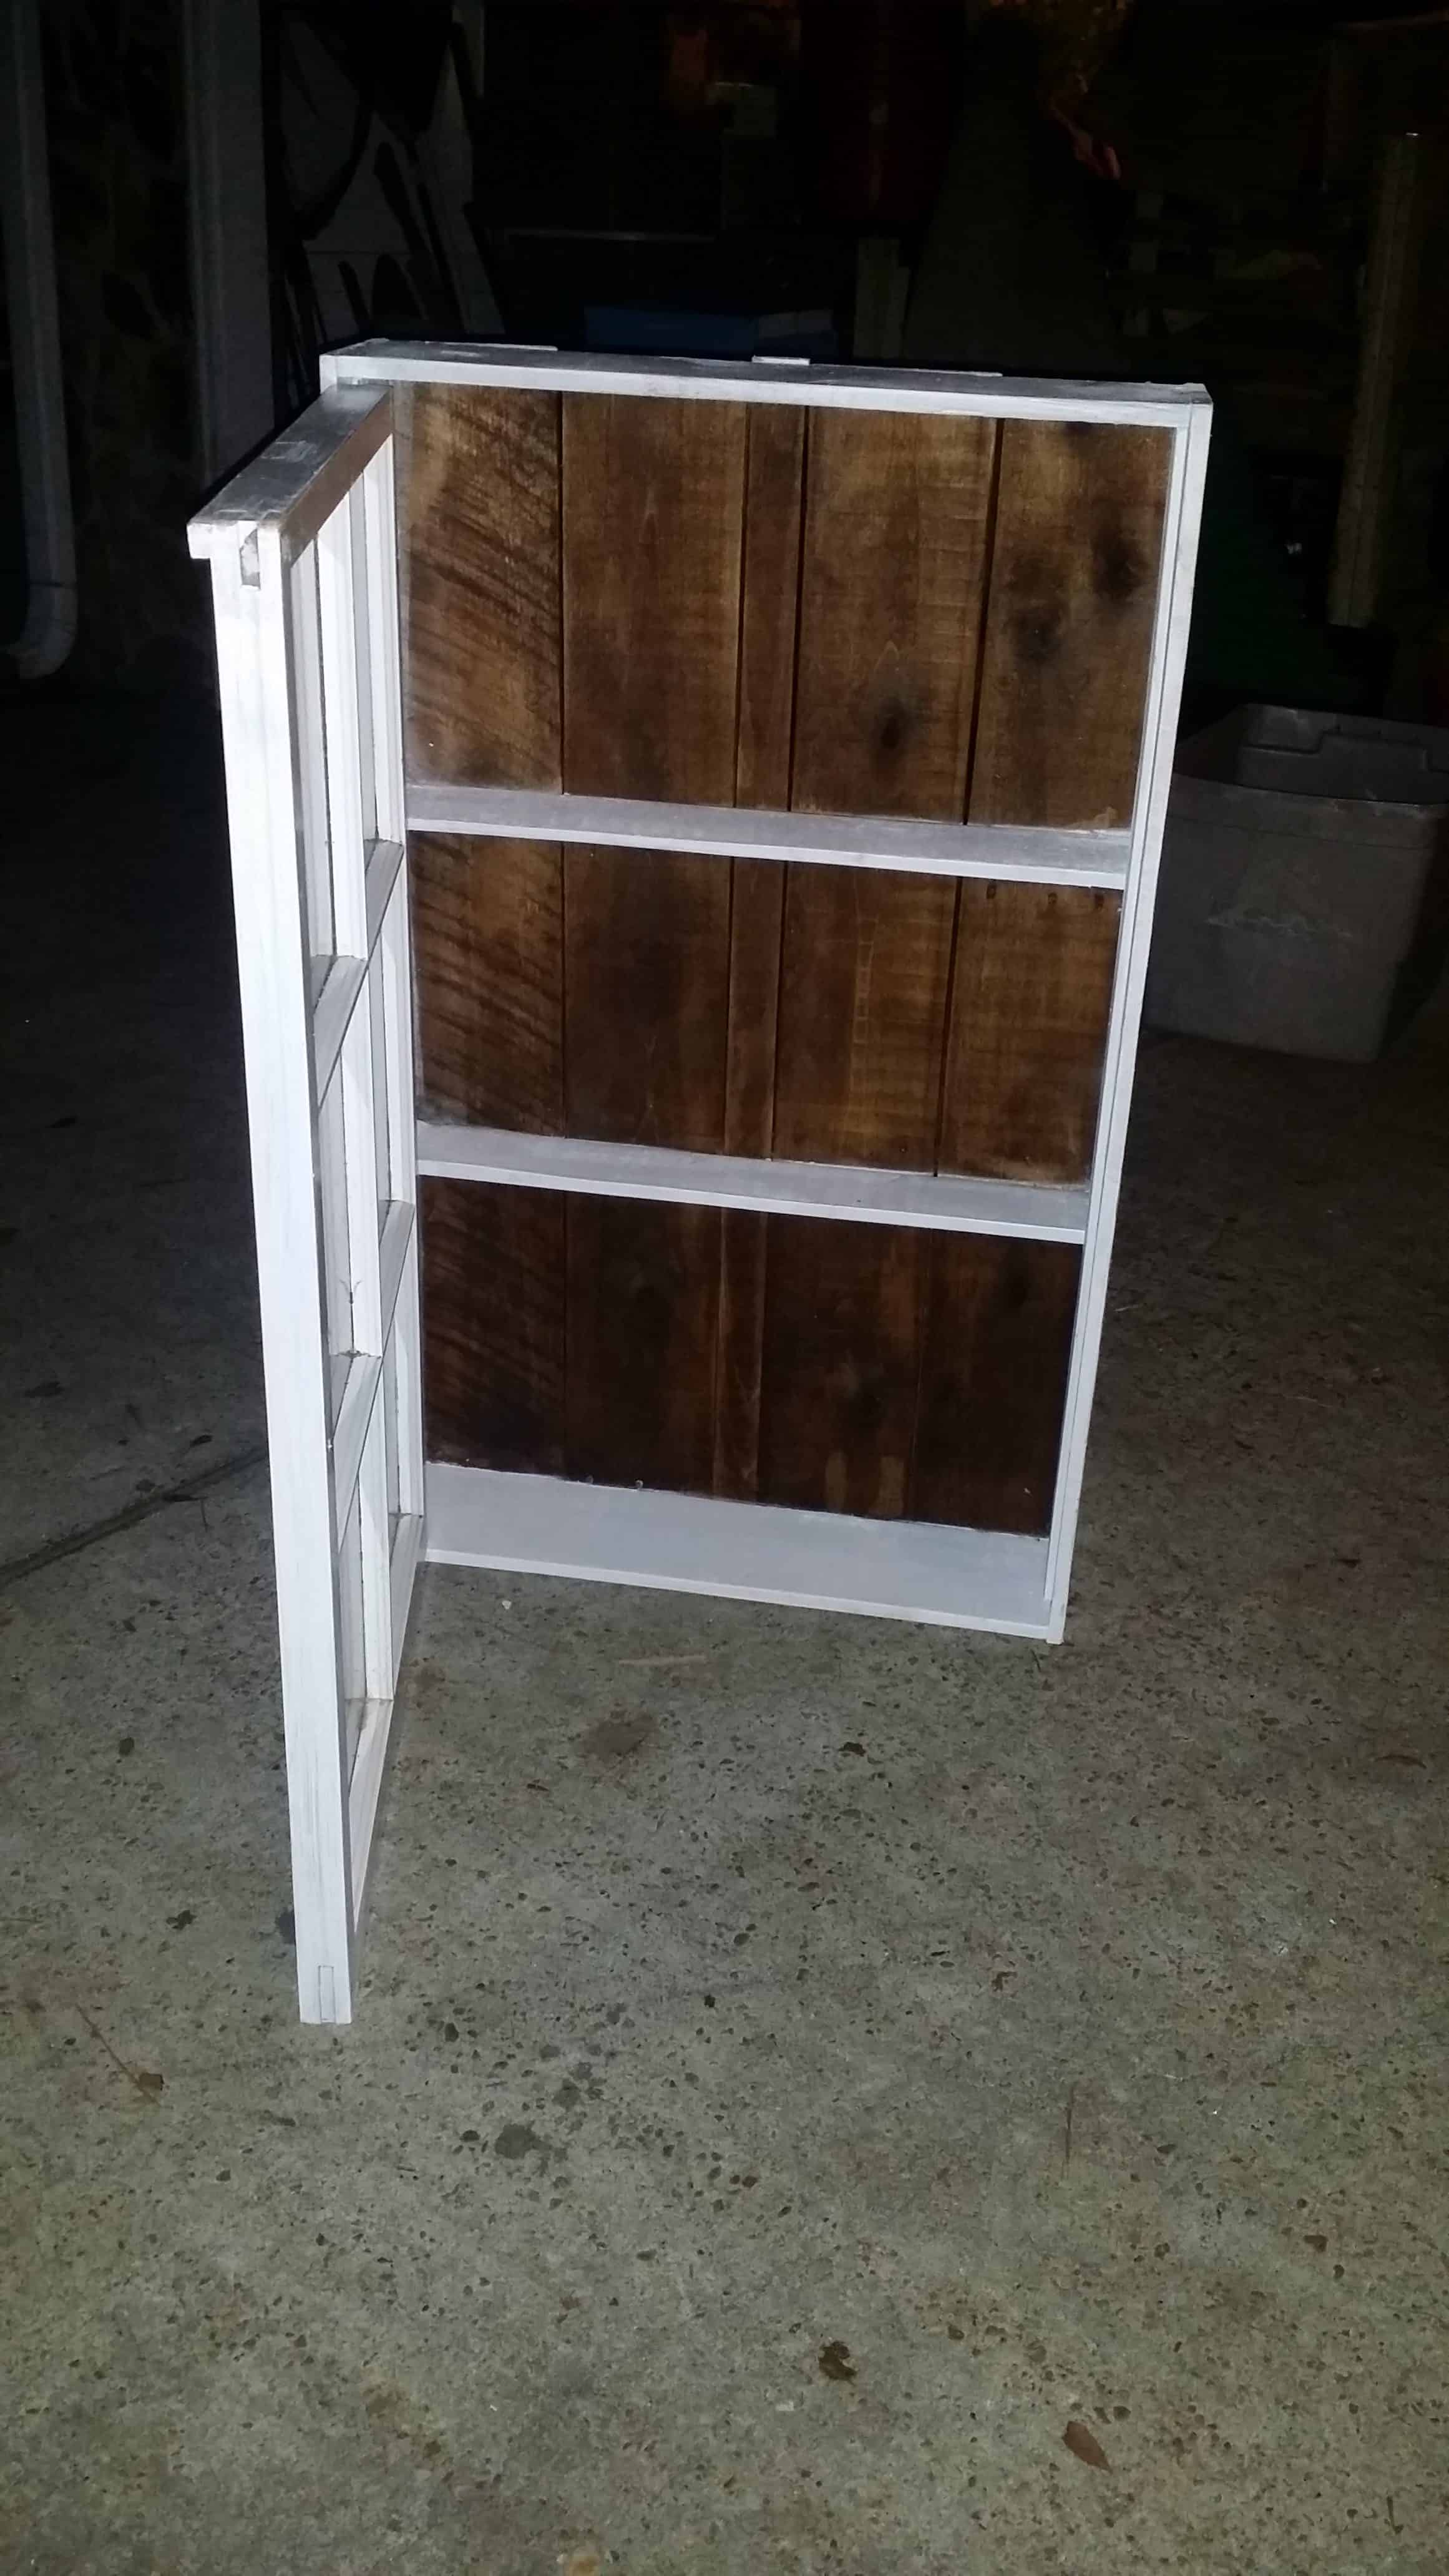 Upcycled Windows & Pallet Wood Into Bathroom Cabinet • Recycled . Full resolution  image, nominally Width 2322 Height 4128 pixels, image with #5D4734.